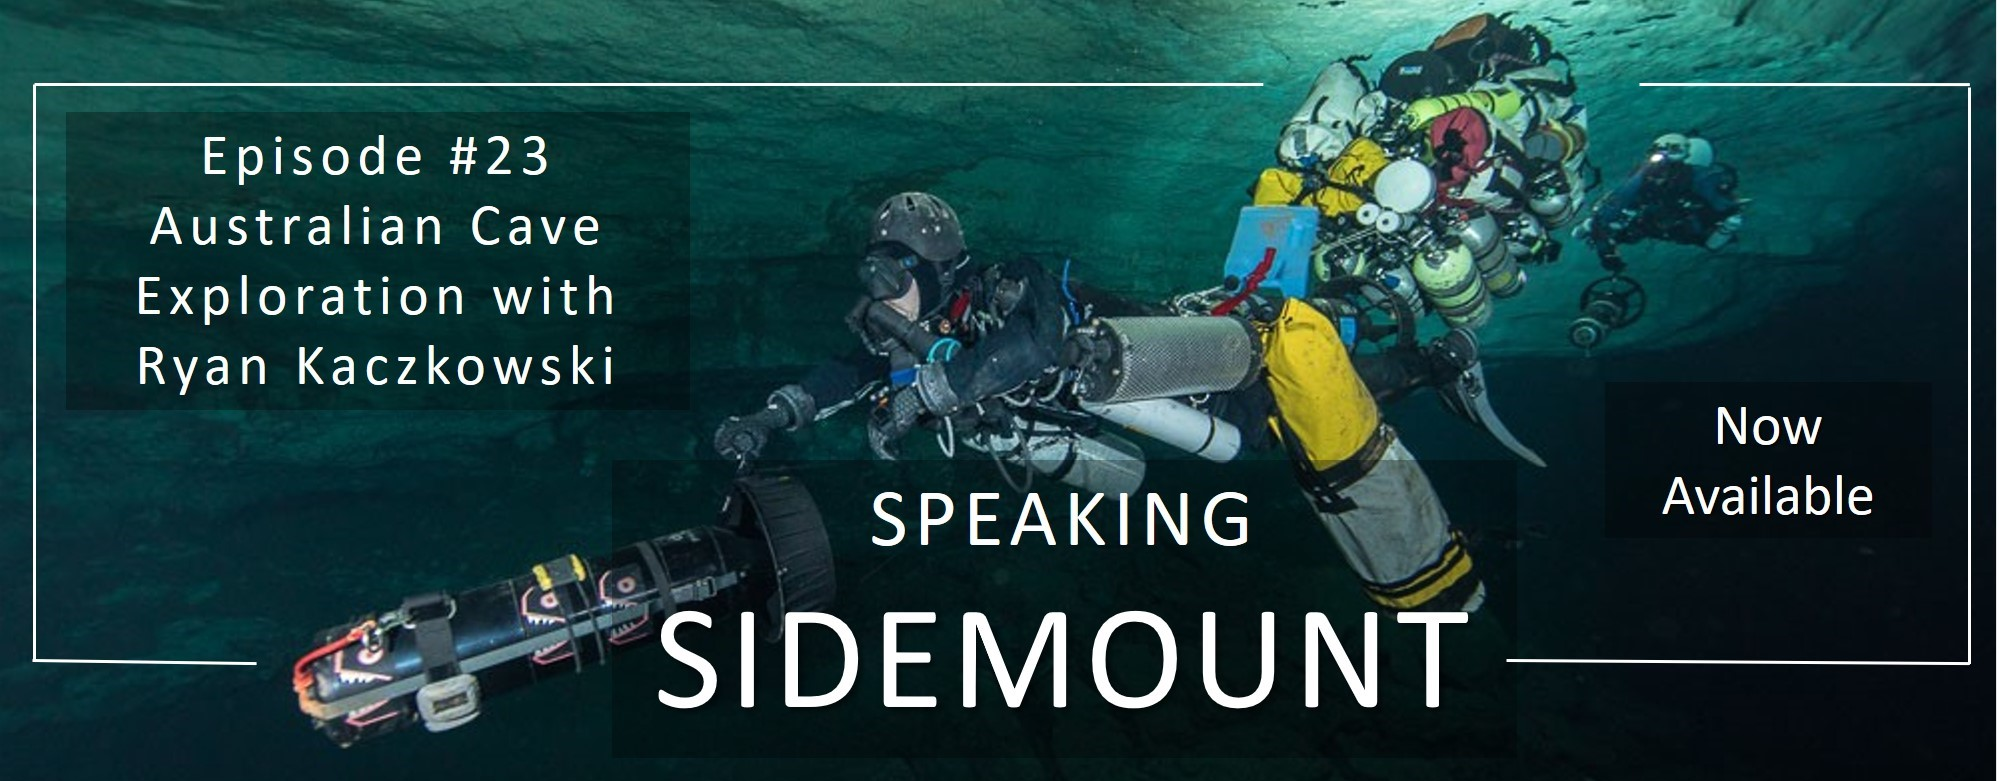 Speaking Sidemount Cover 1920x480 (Ep23).jpg